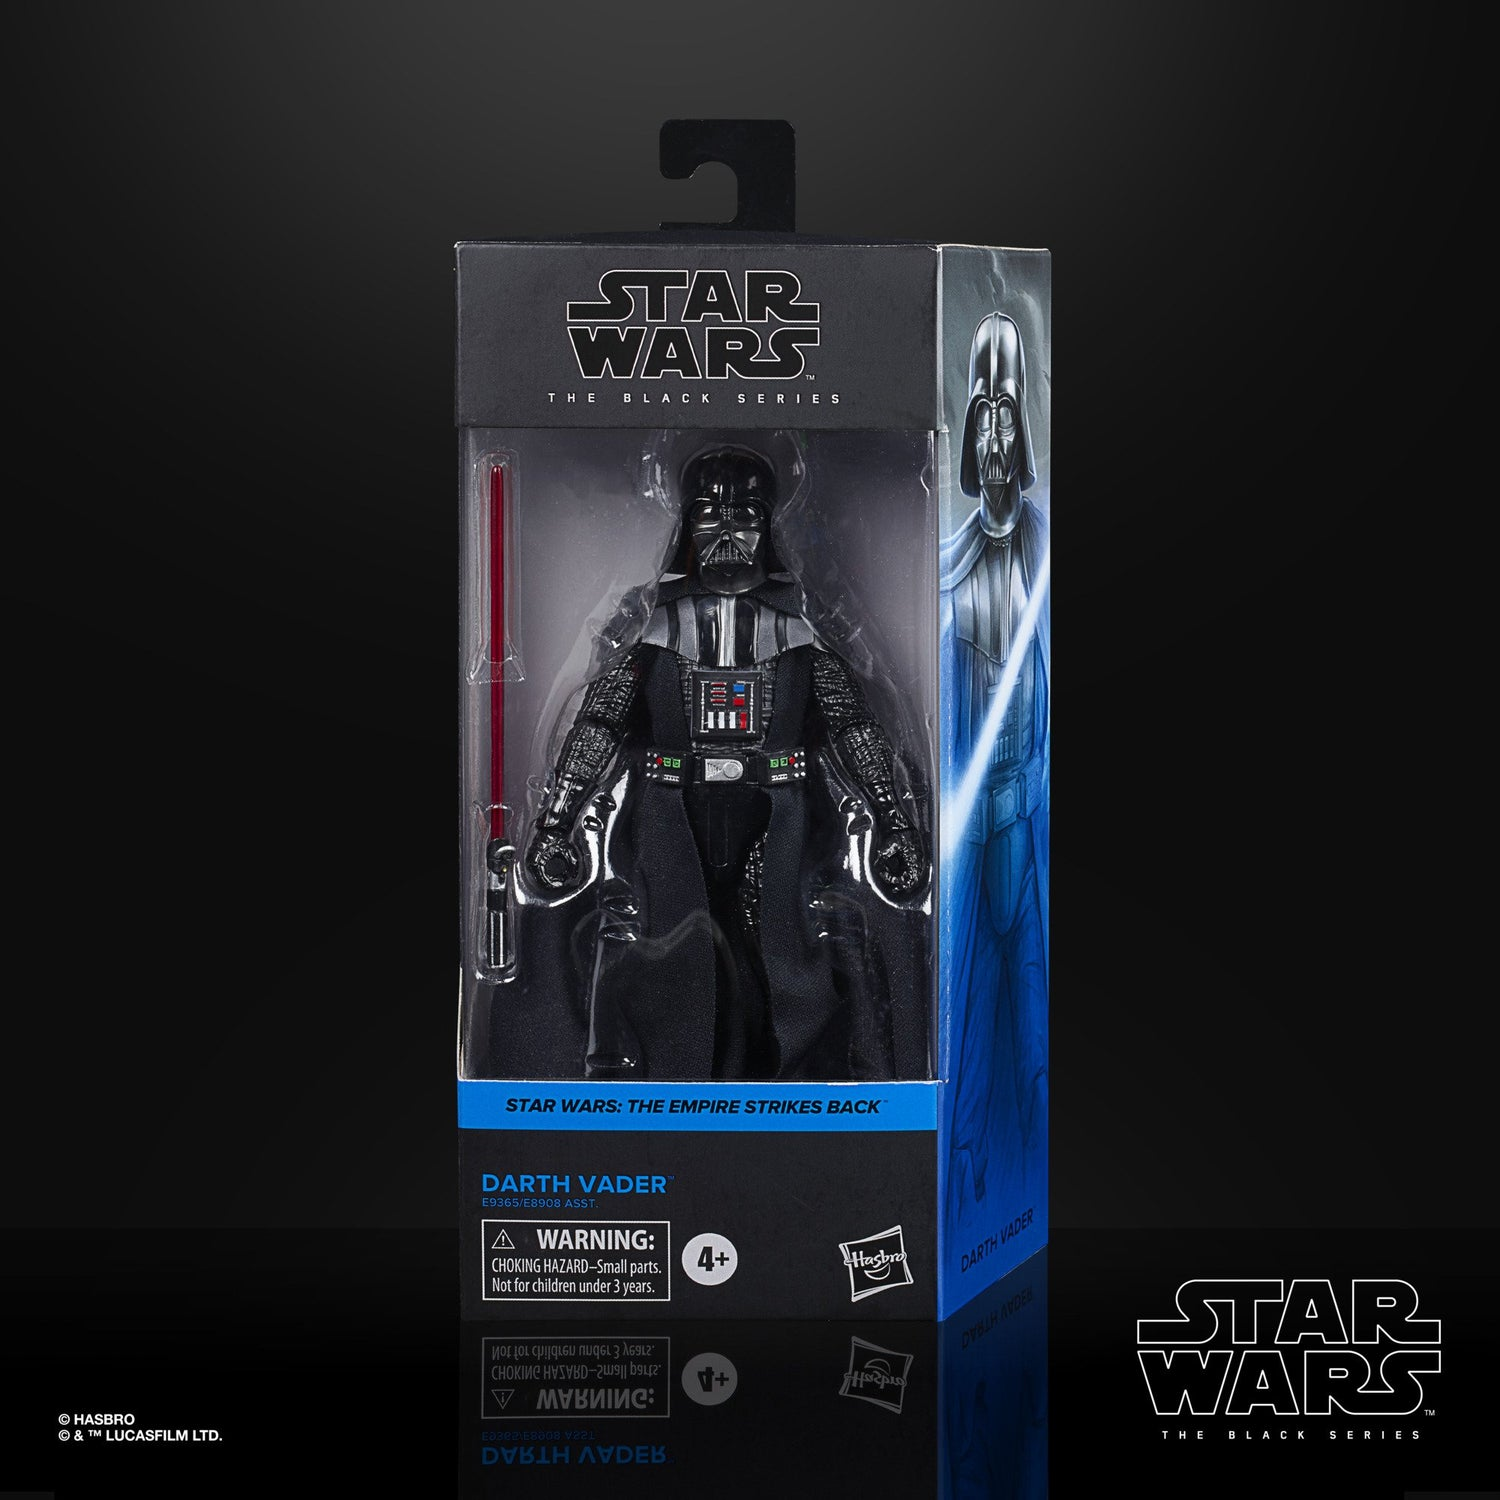 Image of Star Wars The Black Series Darth Vader 6-Inch Action Figure